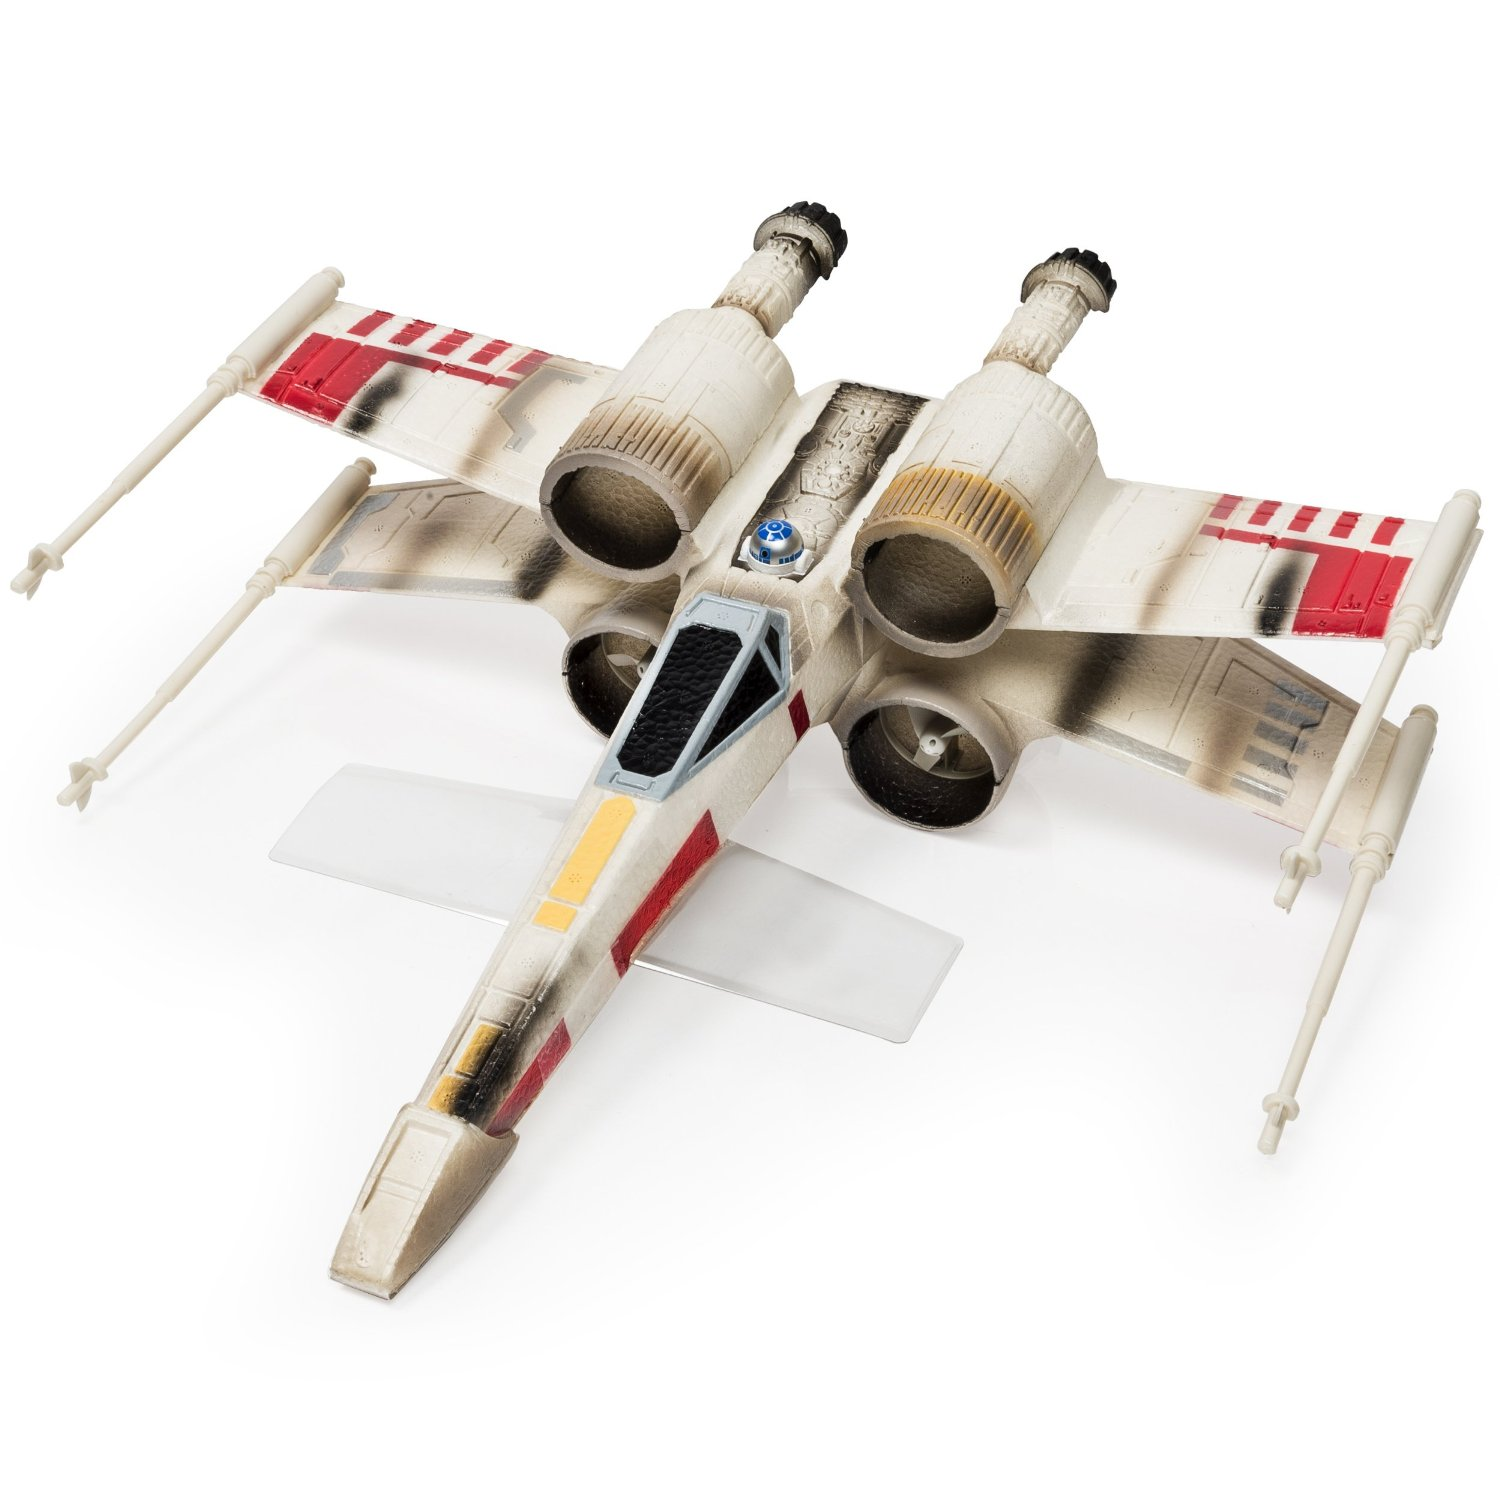 X-wing Starfighter Remote Control